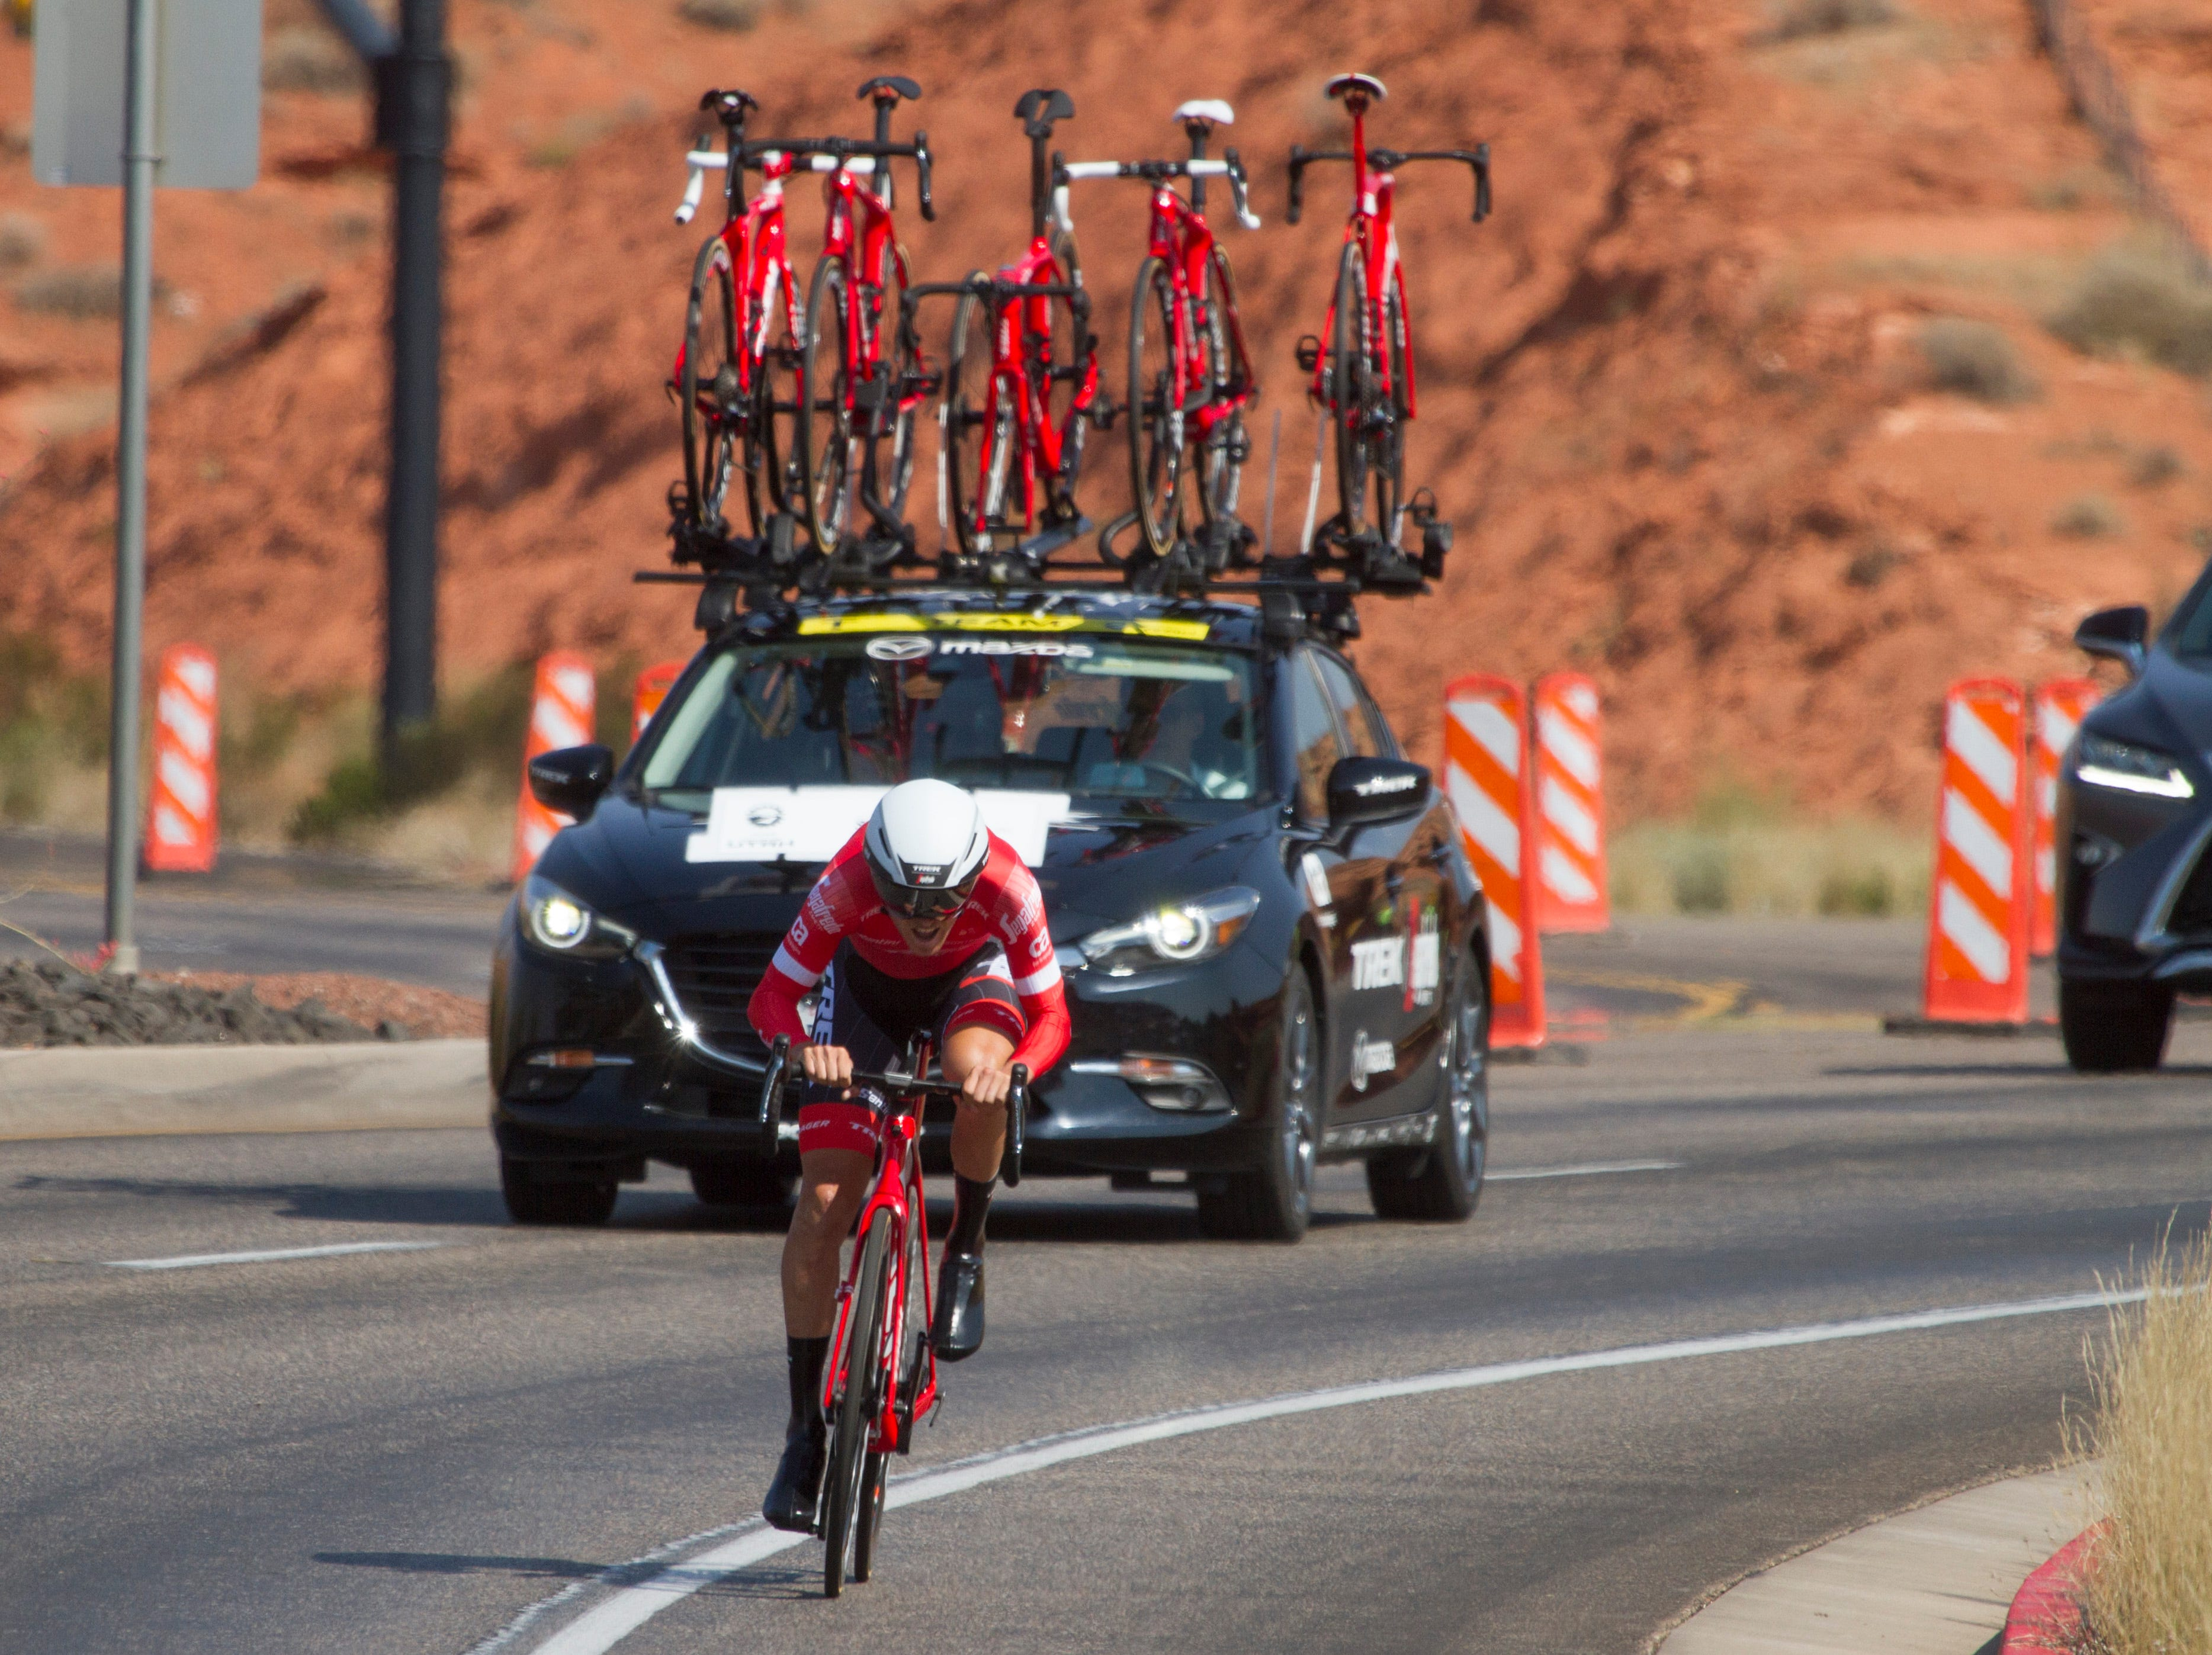 Cyclists compete during the St. George section of the Tour of Utah Monday, Aug. 6, 2018.